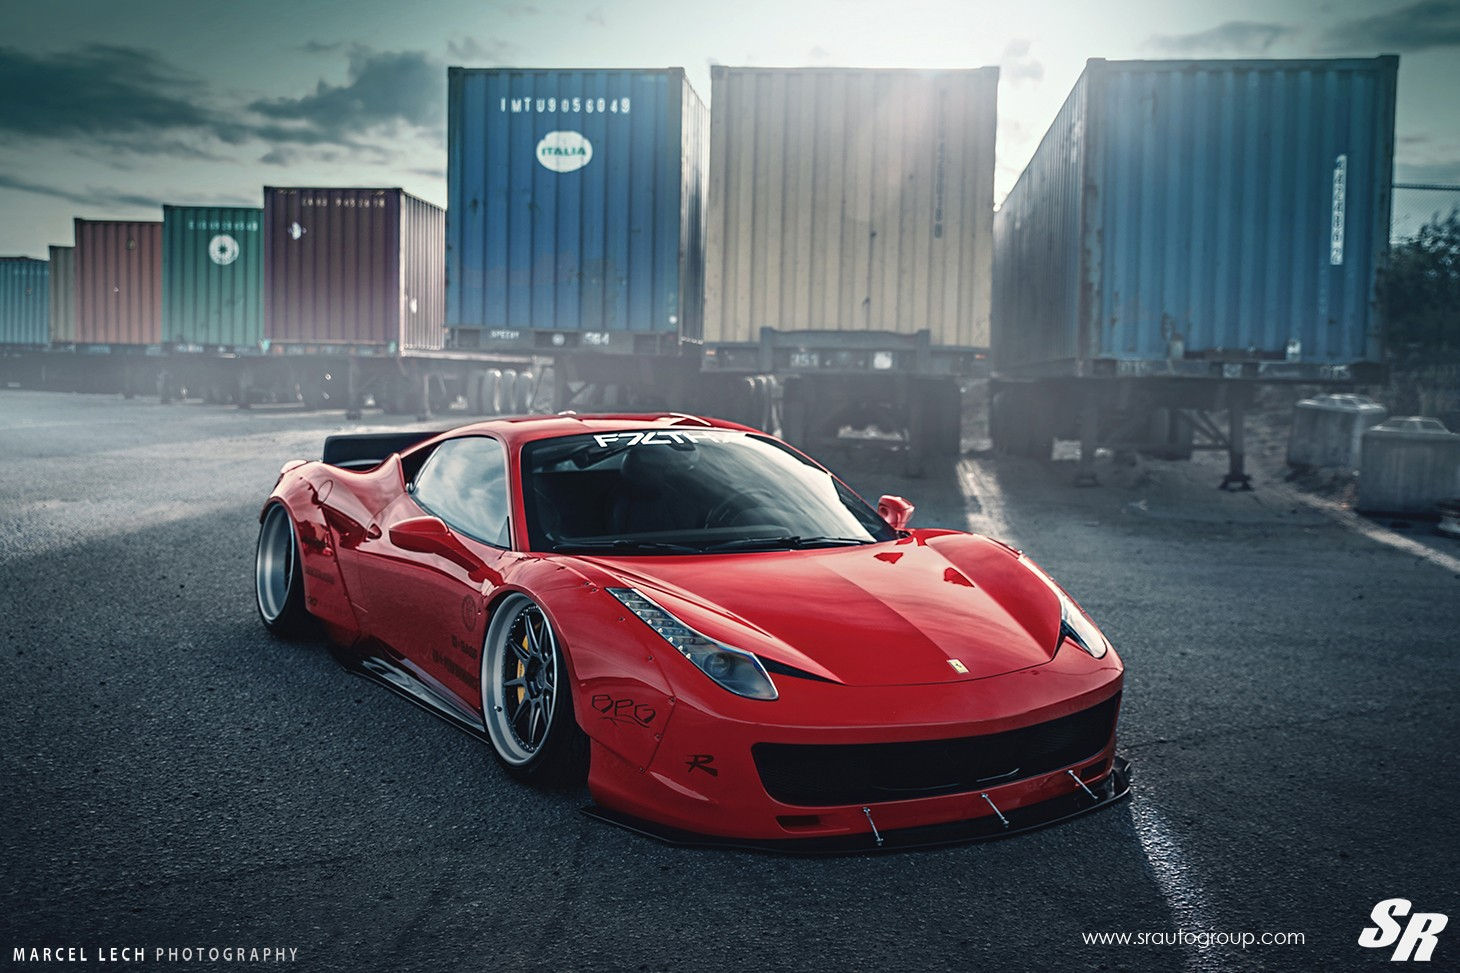 Liberty Walk Ferrari 458 Italia on PUR Wheels: Italian Cuisine ... on liberty walk corvette, liberty walk mustang, liberty walk chevrolet, liberty walk m3, liberty walk gtr, liberty walk jeep, liberty walk 250 gto, liberty walk murcielago, liberty walk koenigsegg, liberty walk porsche, liberty walk lamborghini, liberty walk mercedes, liberty walk acura, liberty walk aventador, liberty walk ford, liberty walk range rover, liberty walk z4, liberty walk 458 spider, liberty walk cars, liberty walk bmw,